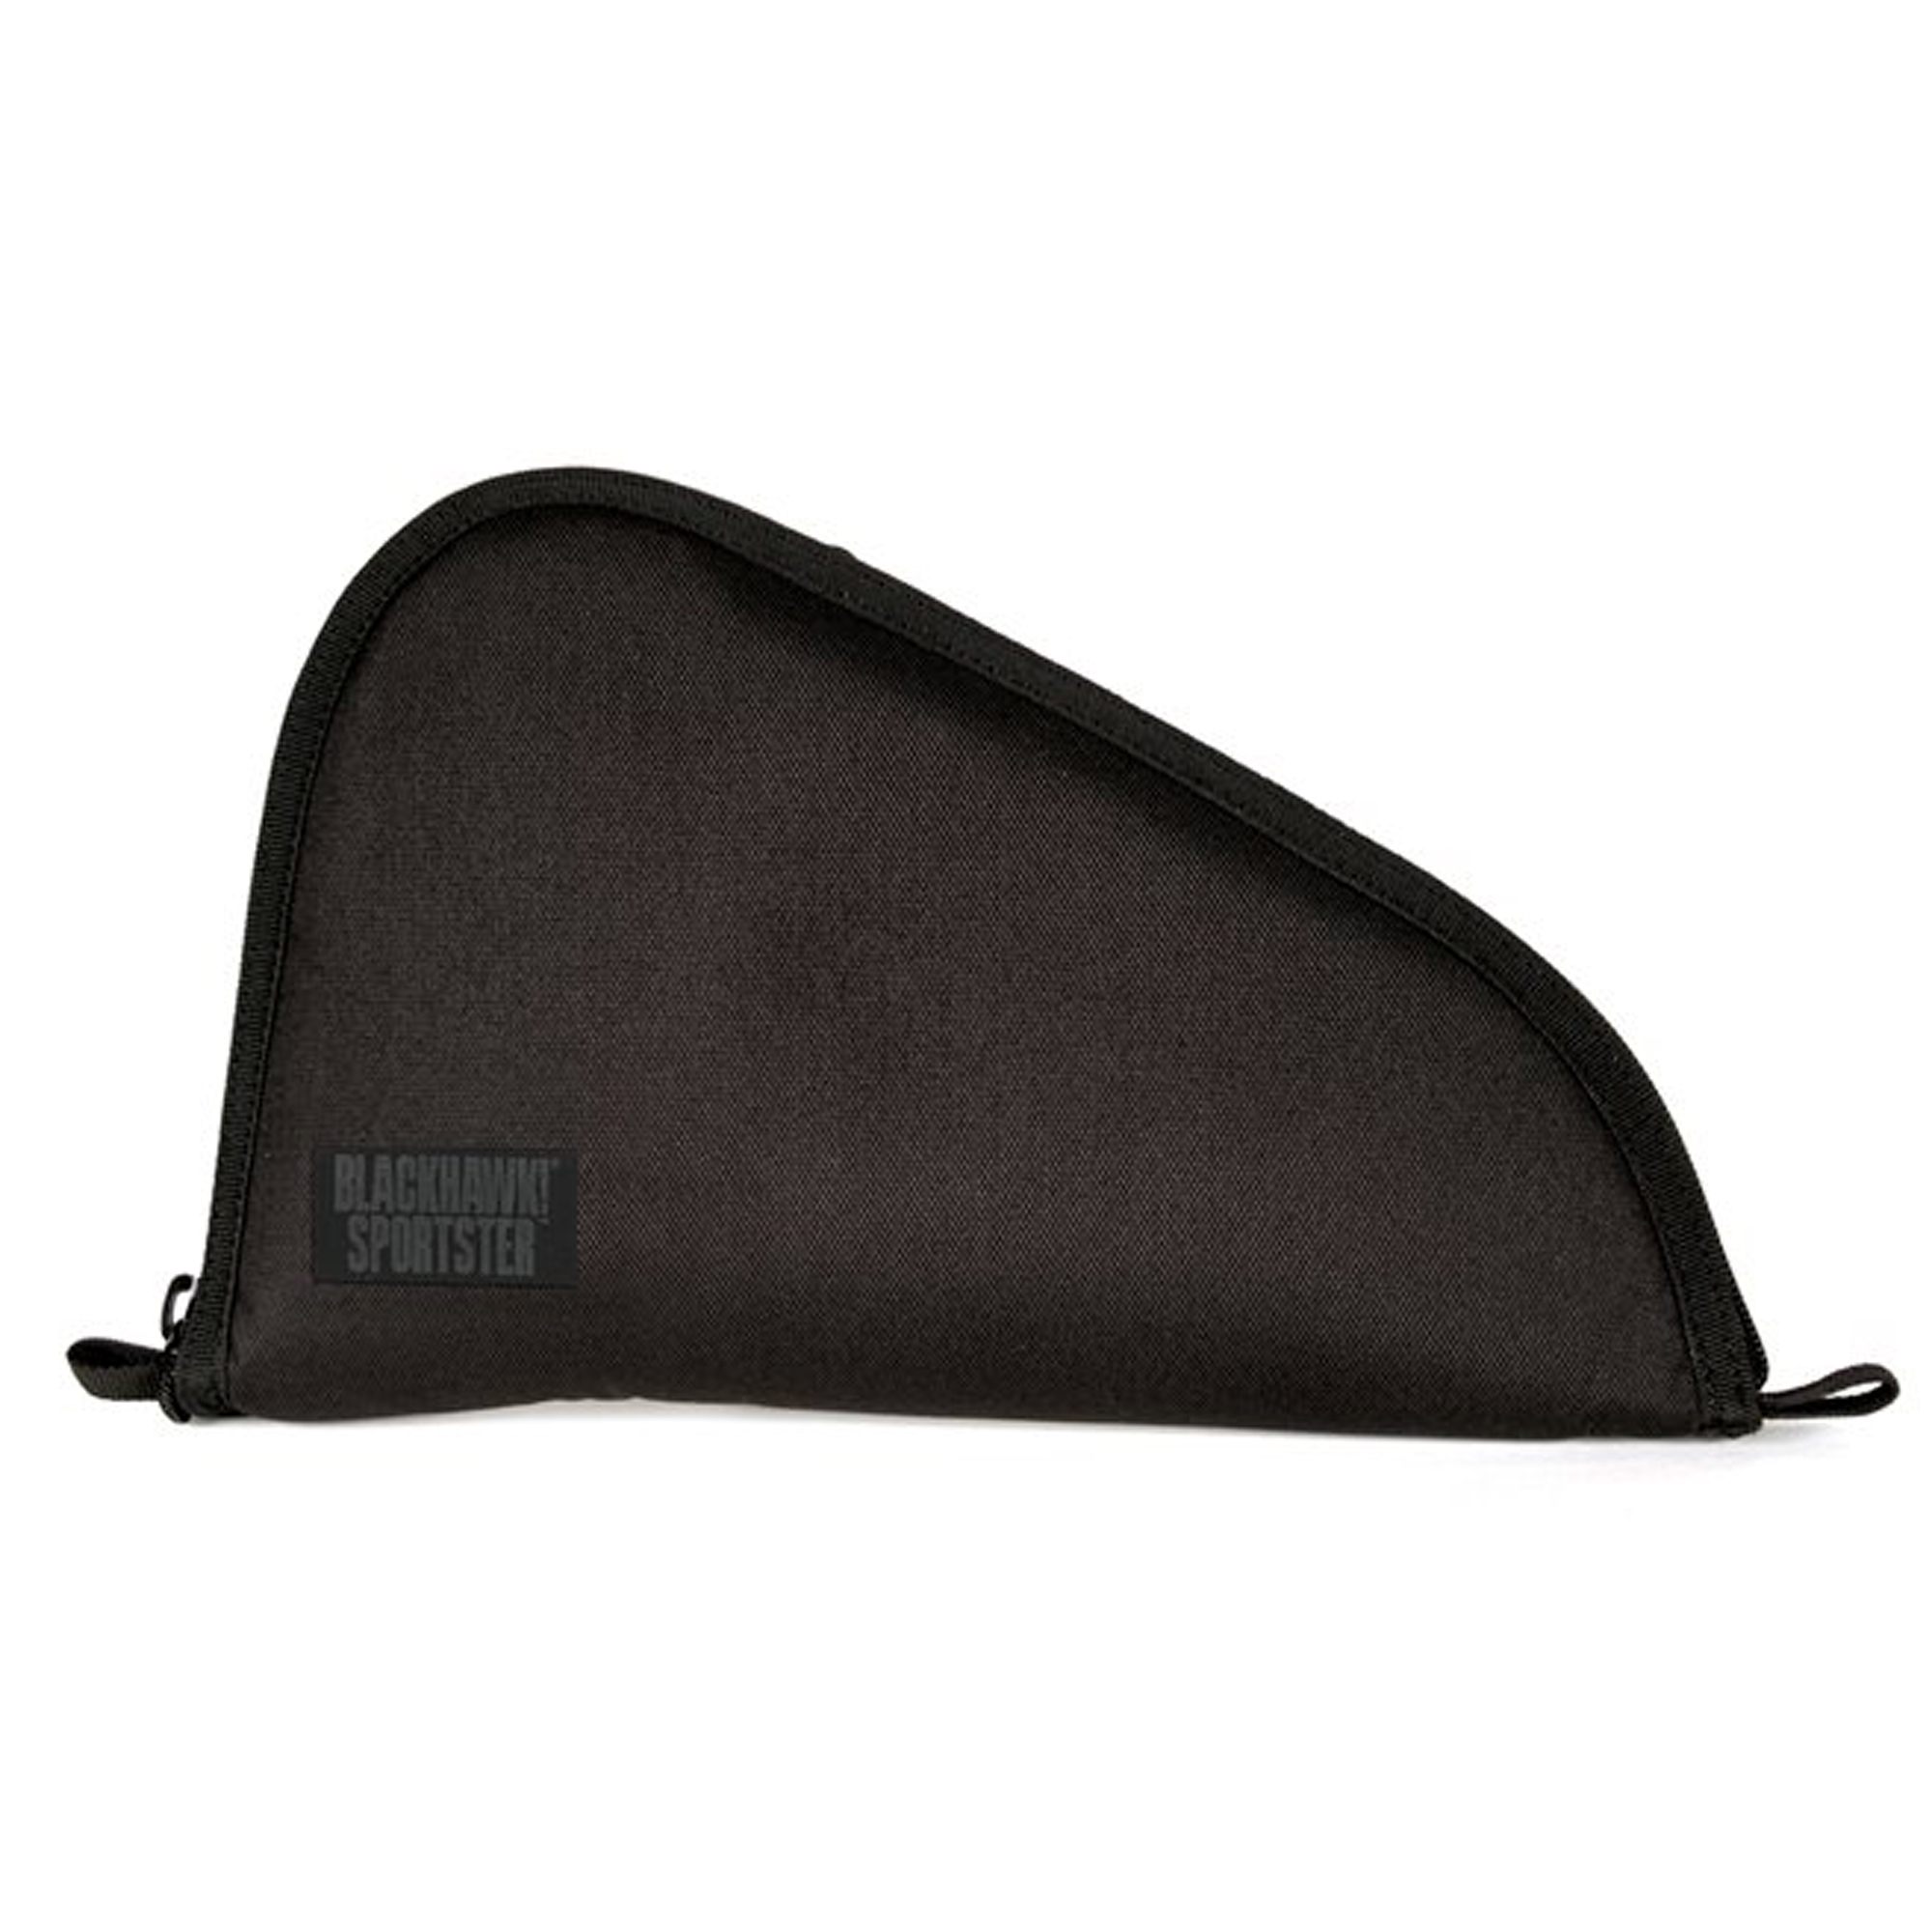 This classic pistol rug design protects firearms and provides easy transport.